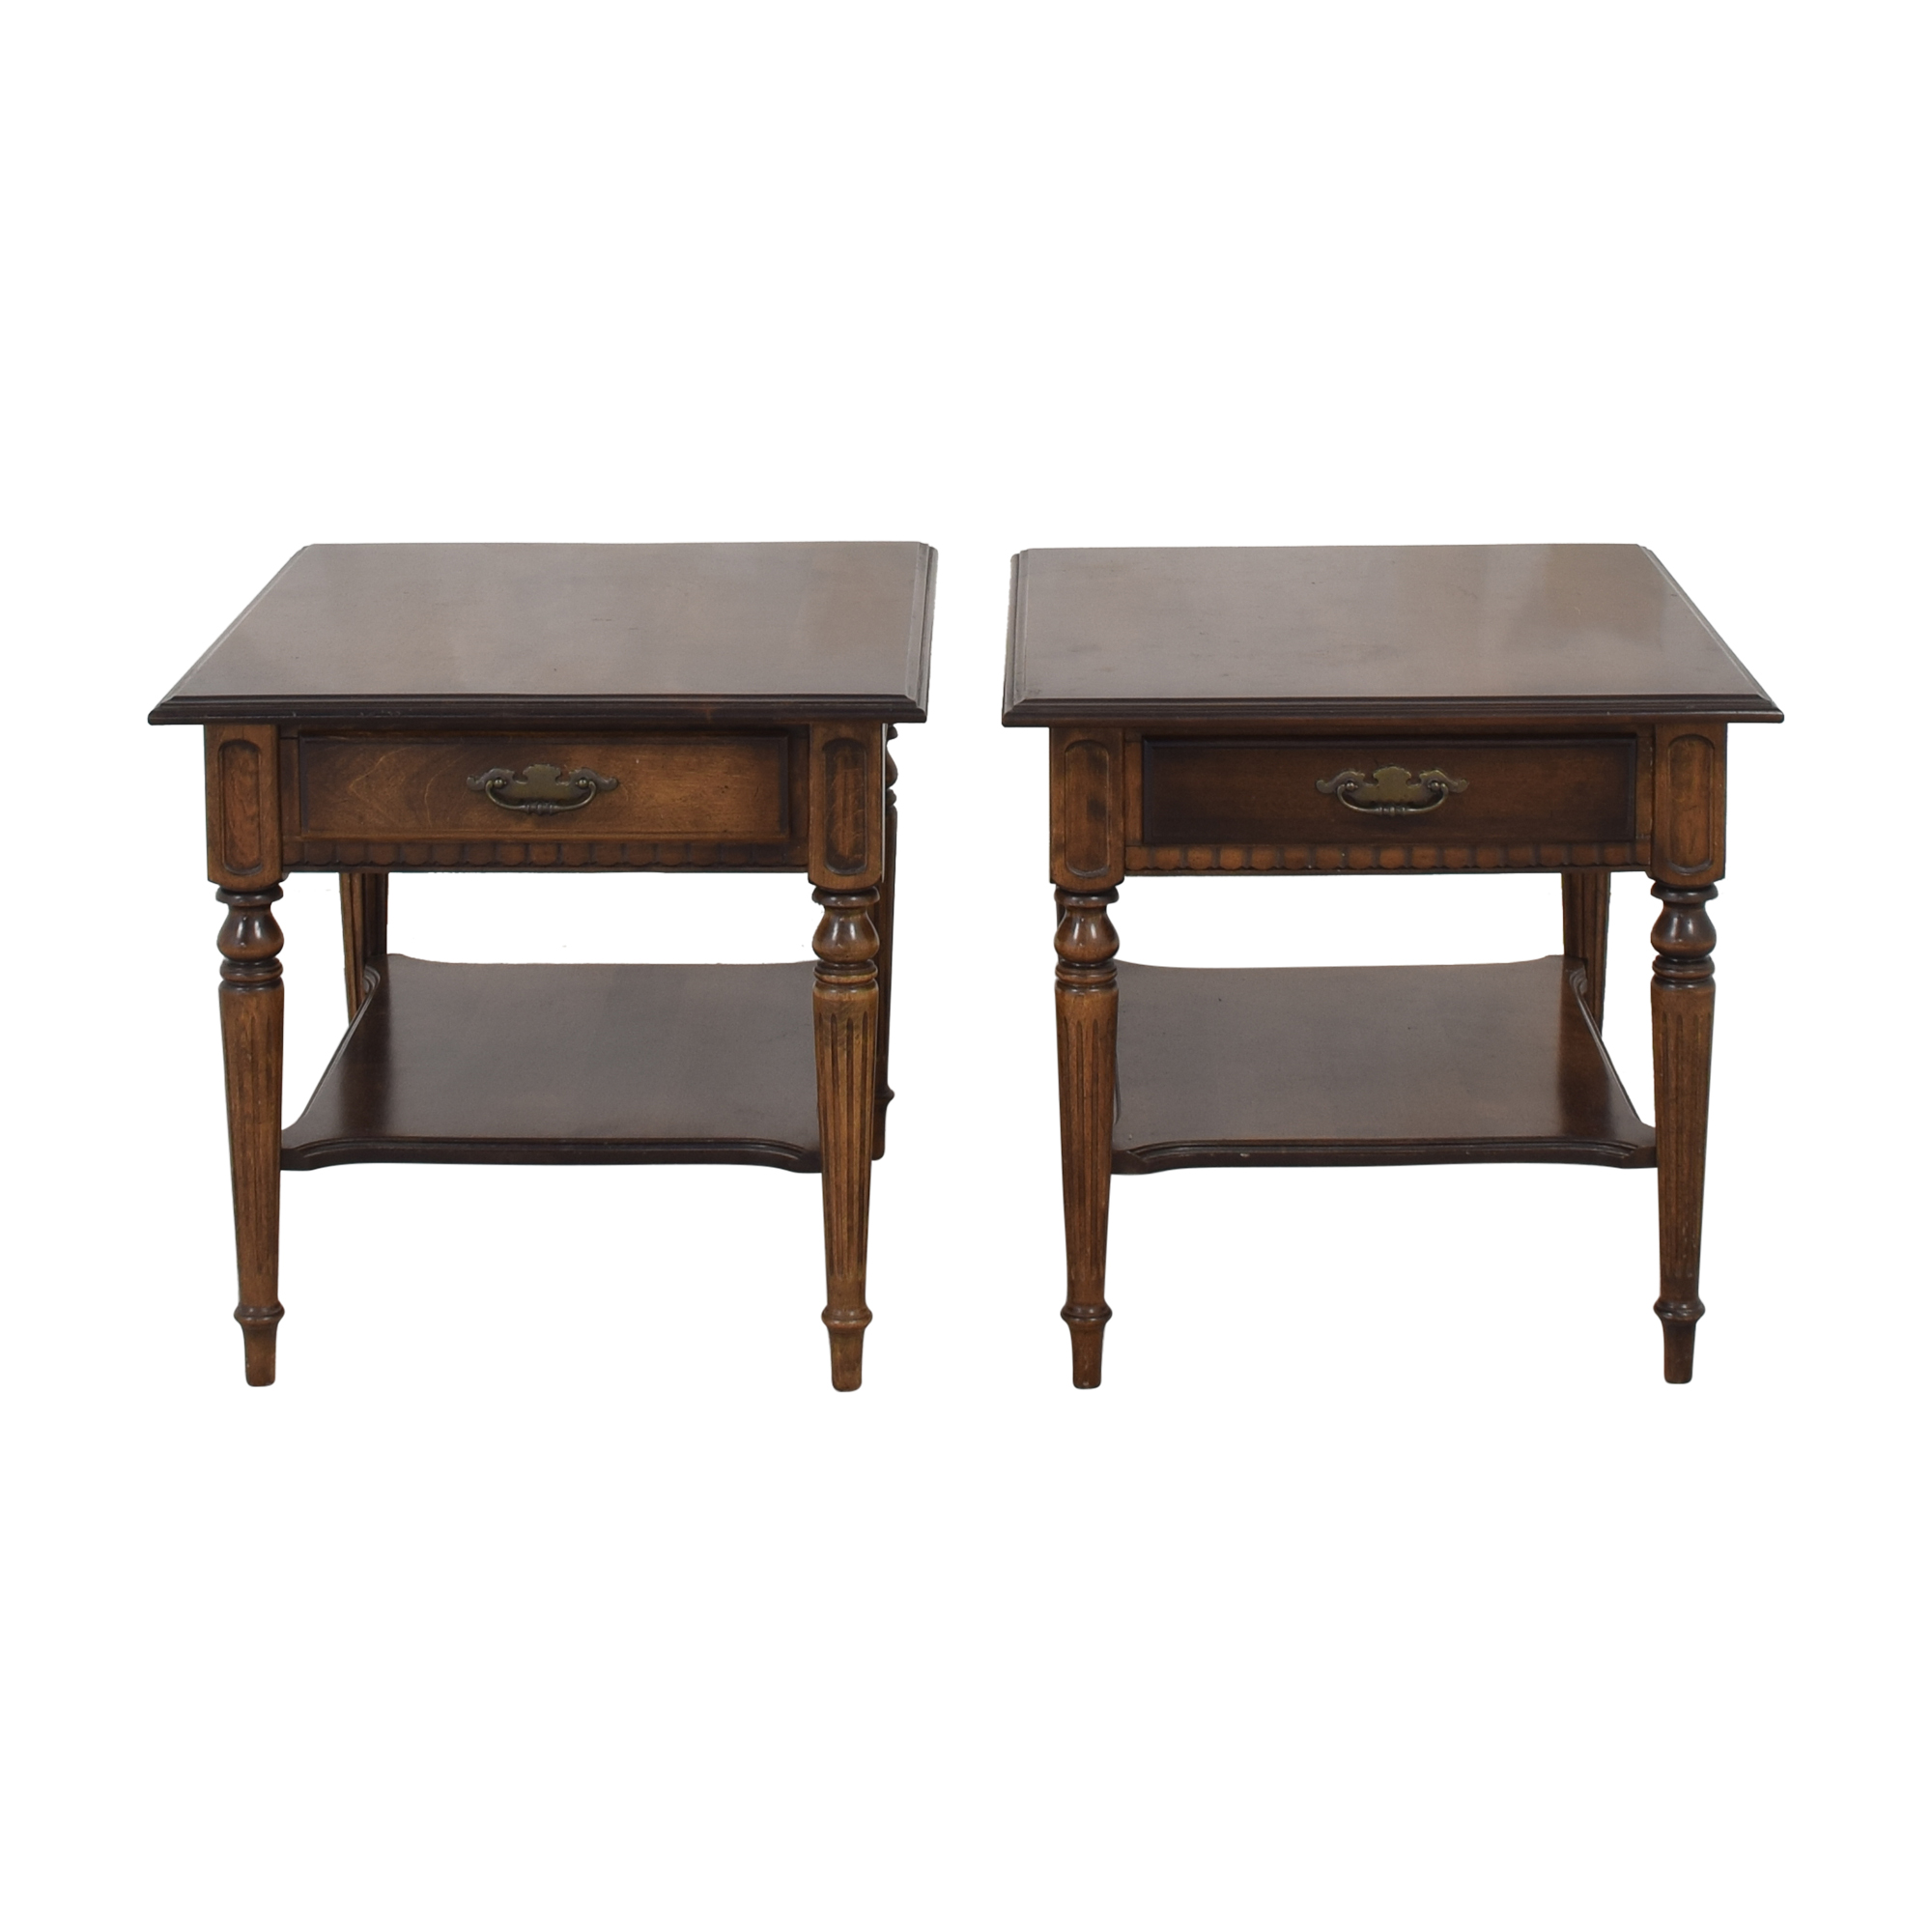 Ethan Allen Ethan Allen Oversized End Tables brown